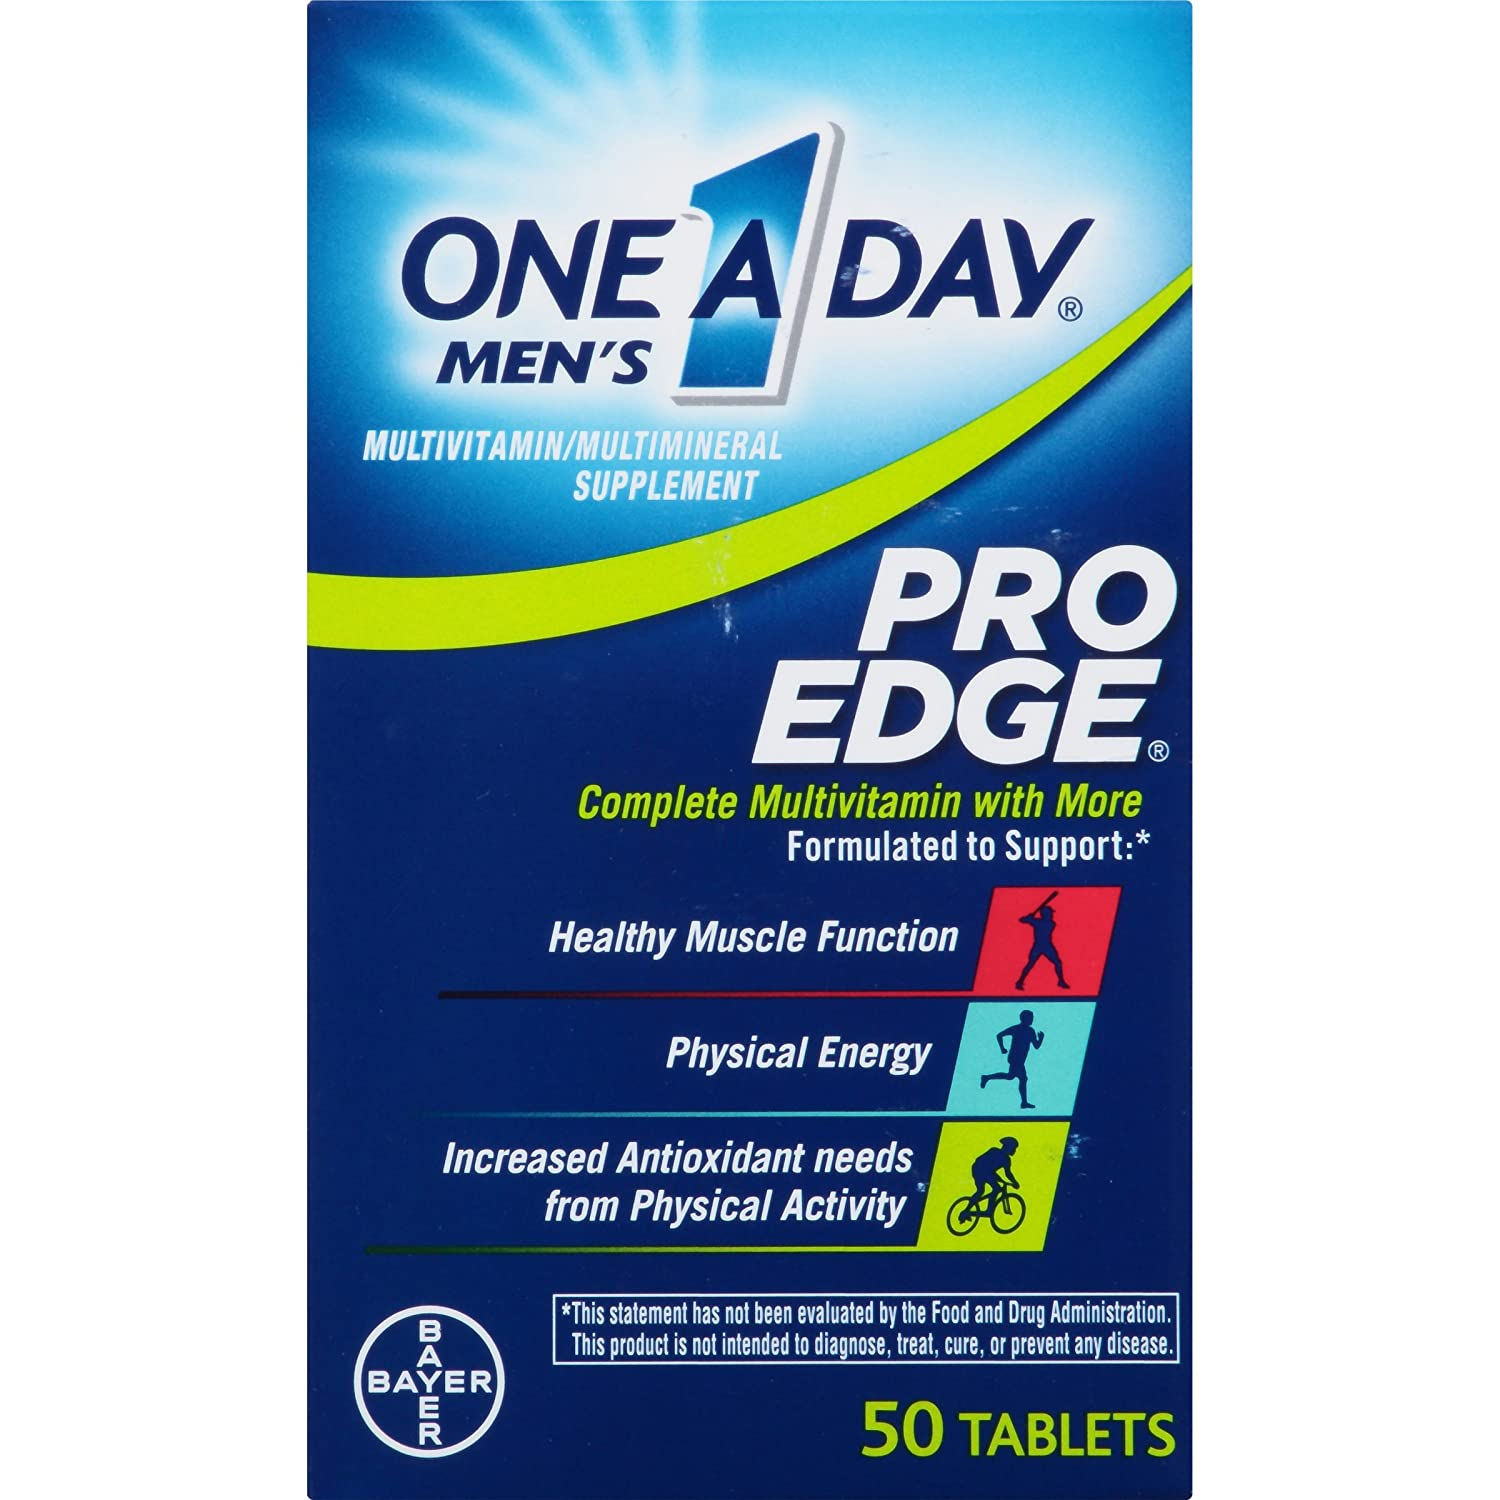 Amazon.com: One-A-Day Mens Pro Edge Multivitamin, 50-tablet Bottle (50-tablet Bottle(2 bottle)): Health & Personal Care